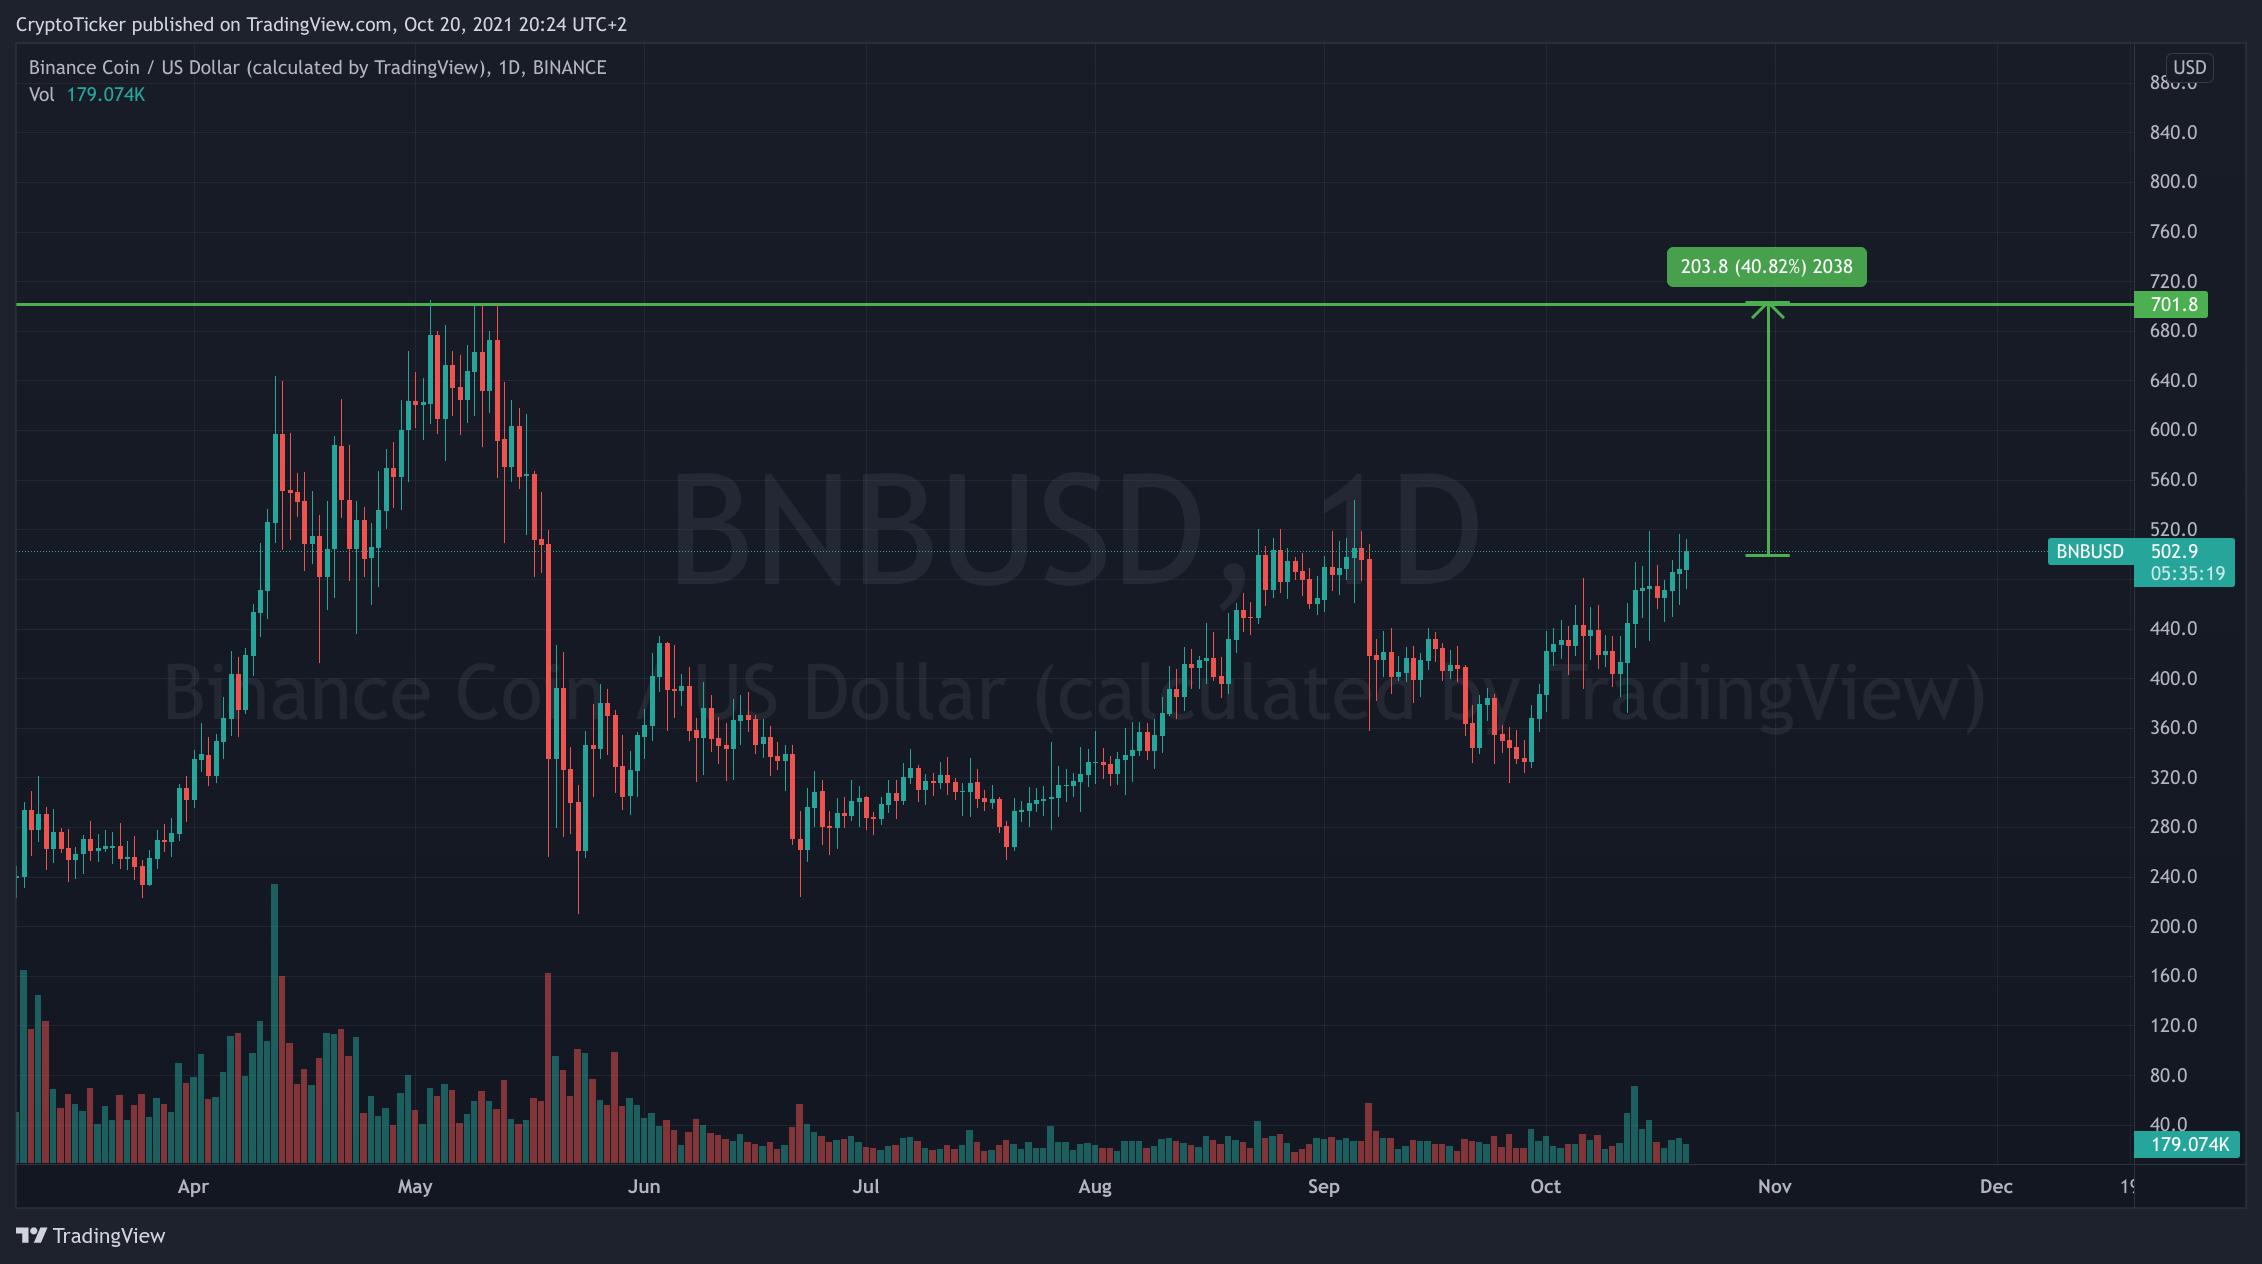 BNB/USD 1-day chart showing a potential to Buy BNB